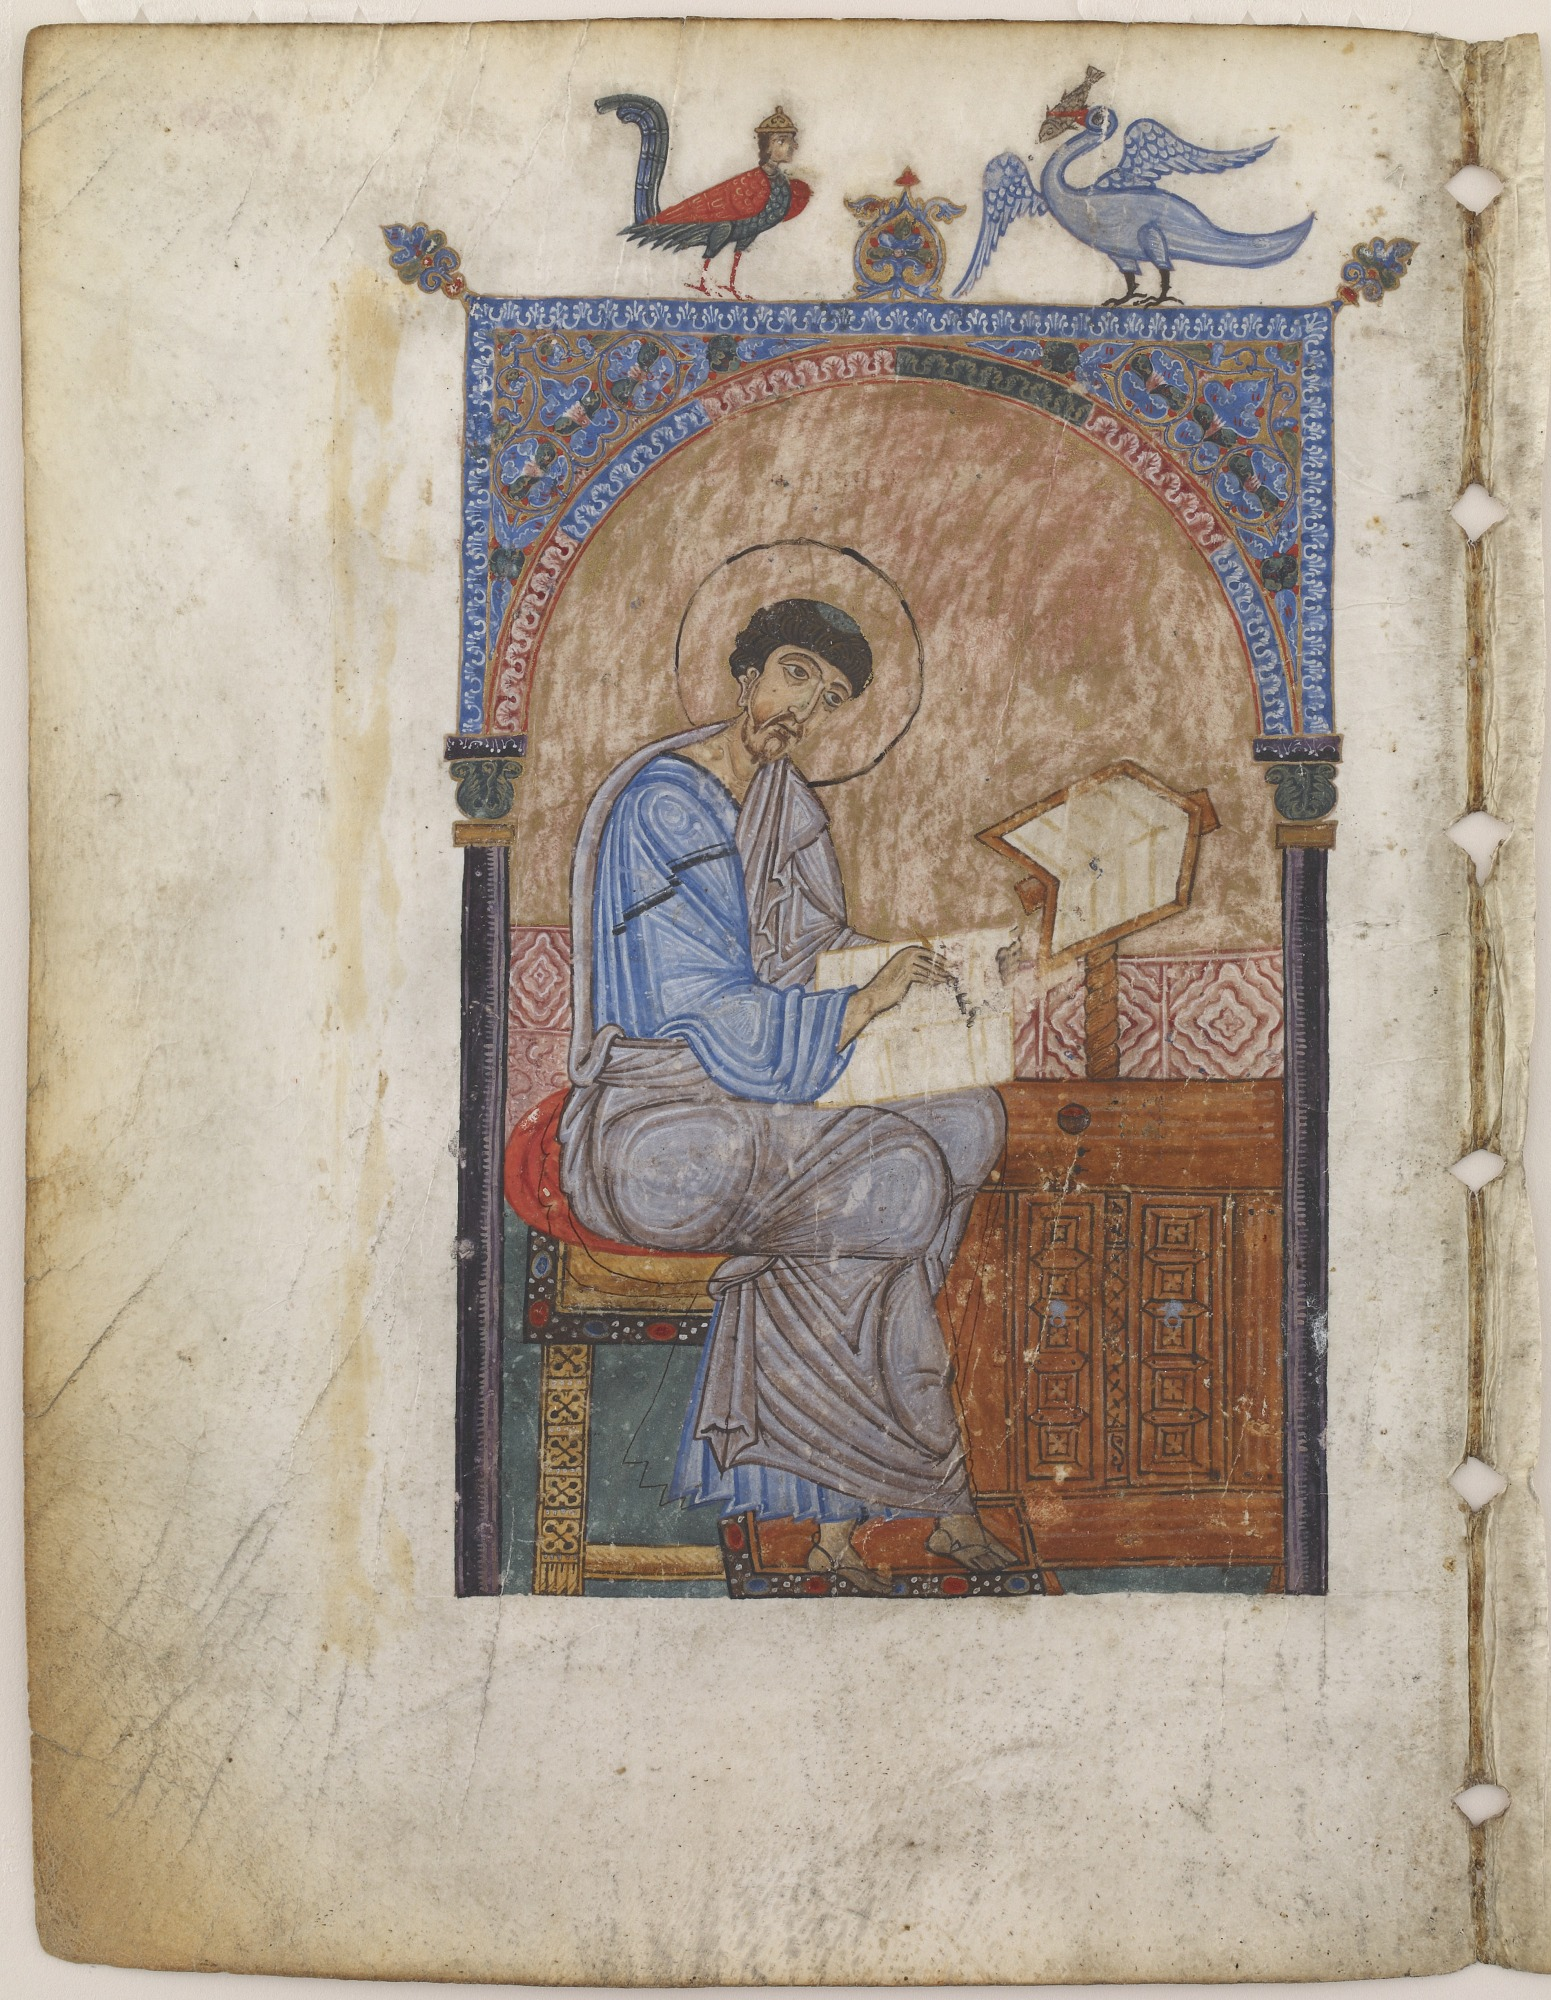 folio 129: Copy of The Gospel according to the four Evangelists